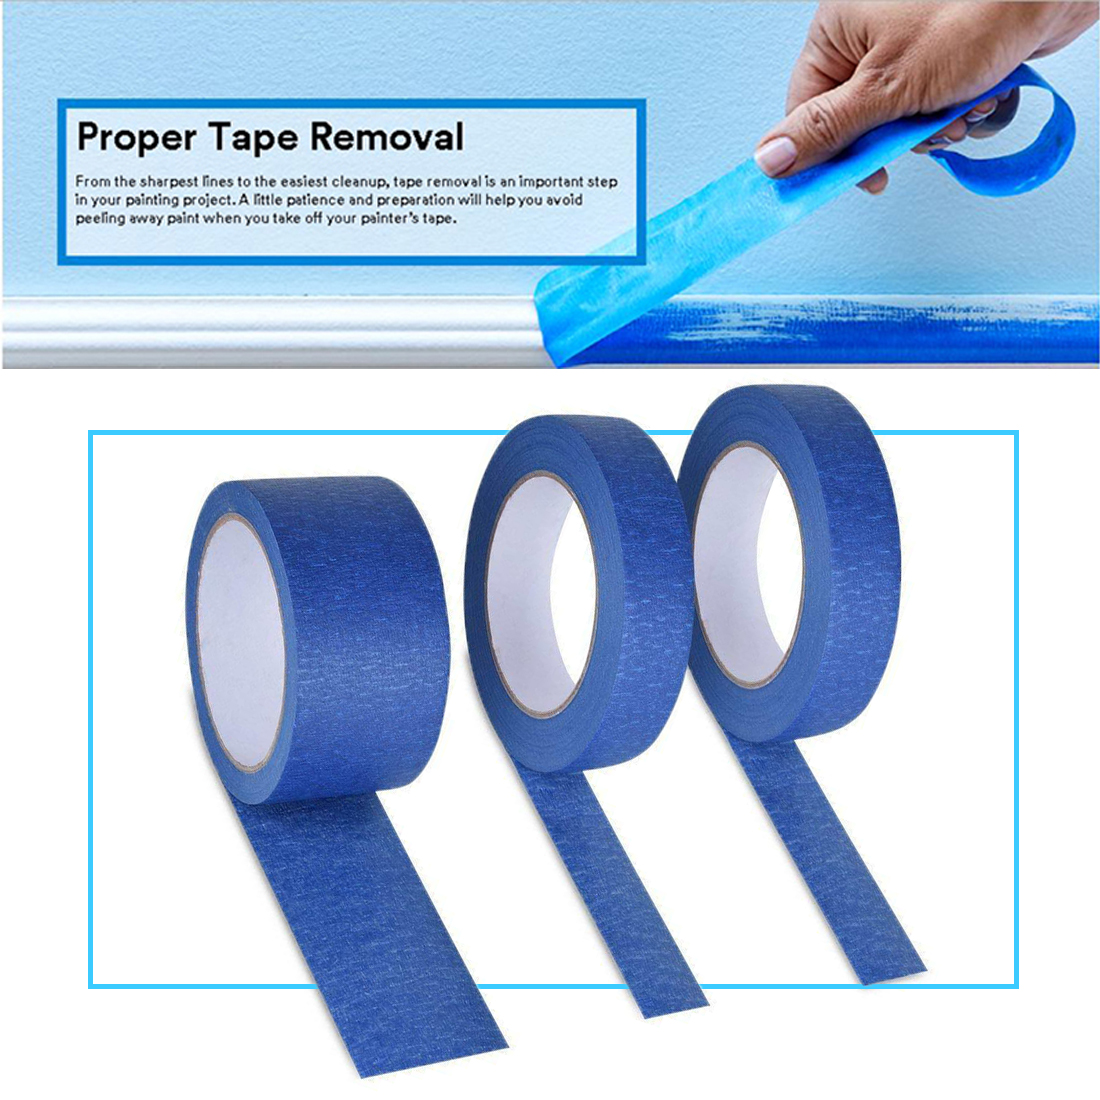 Blue Painter Tape DIY Masking Tape Adhesive Tapes Stickers Decorative Stationery Tapes Adhesive House Painting Peeling Peel Tape